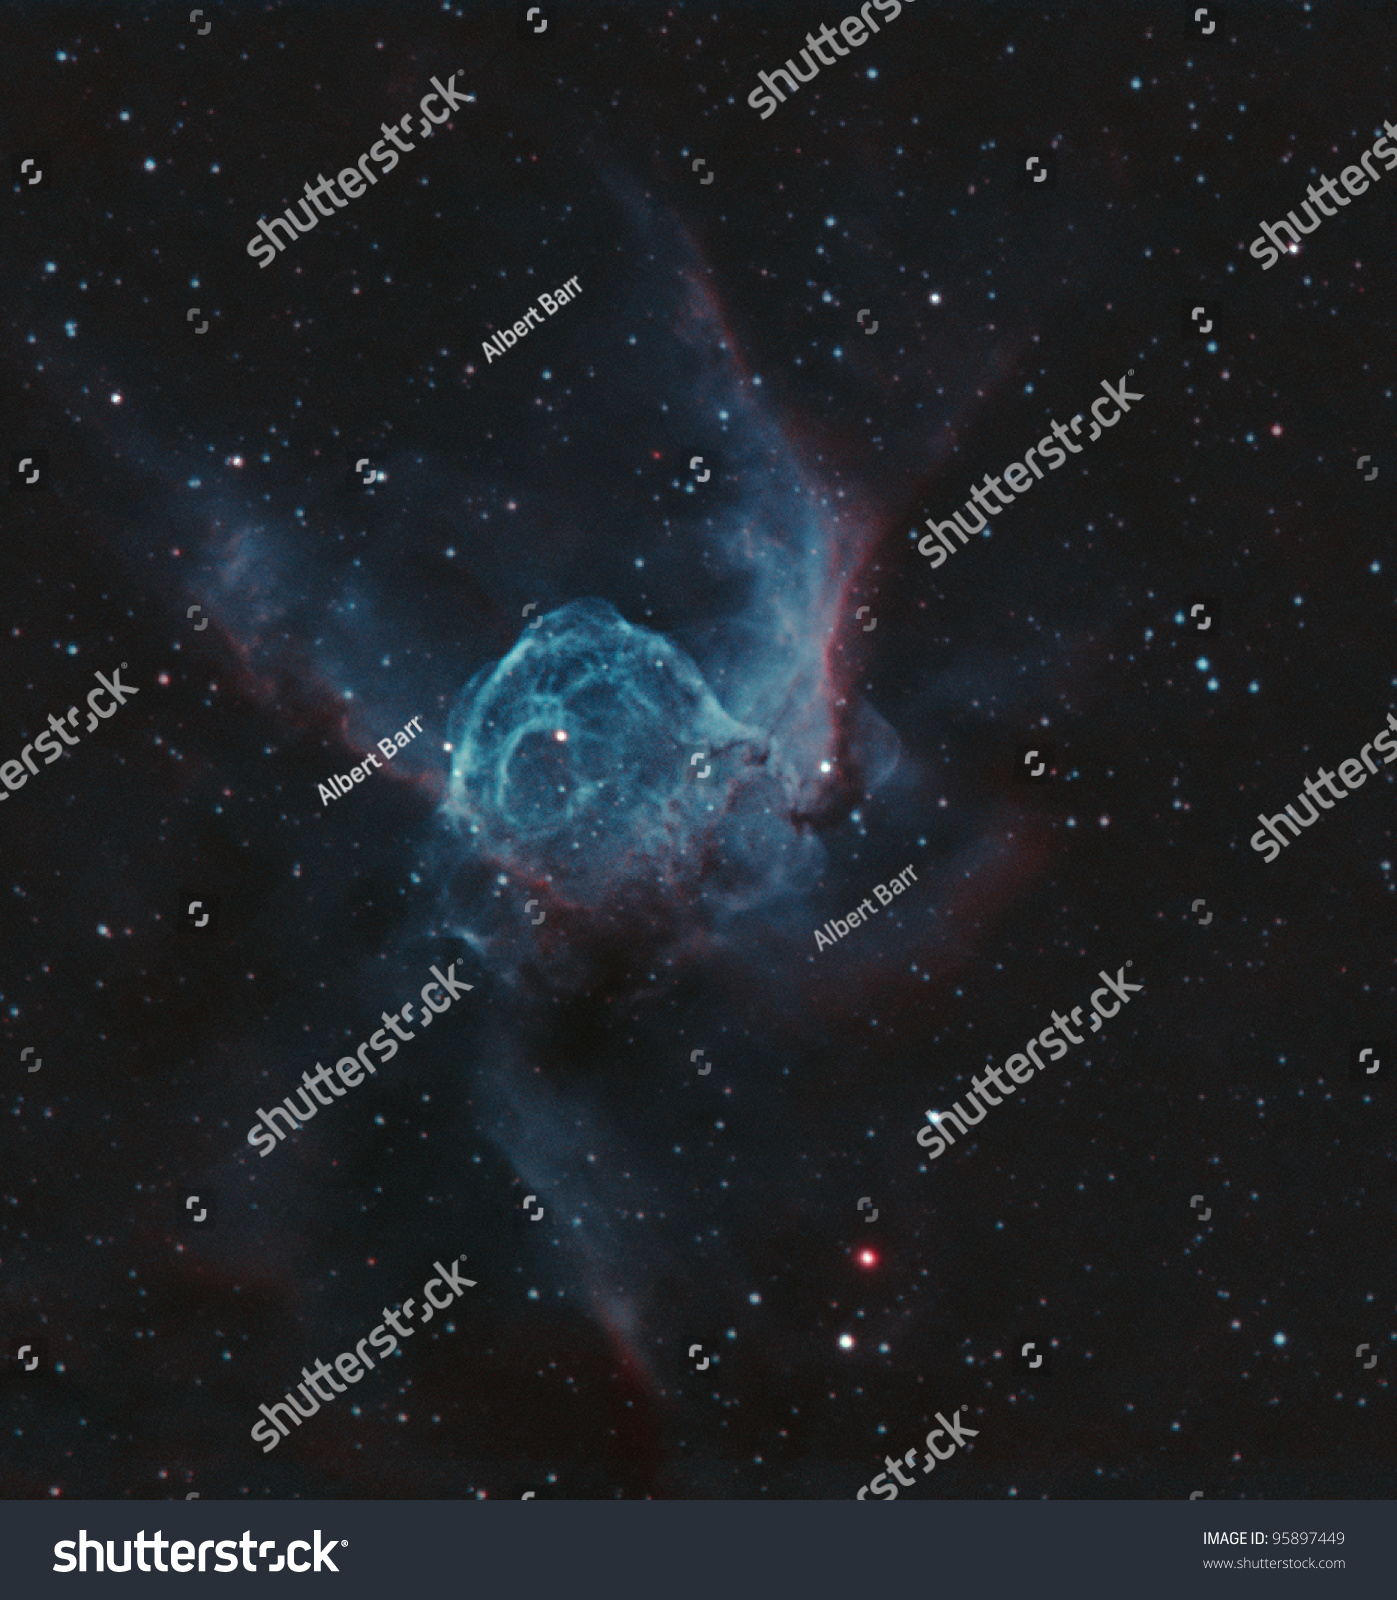 Ngc 2359 Known Thors Helmet Duck Stock Photo 95897449 - Shutterstock